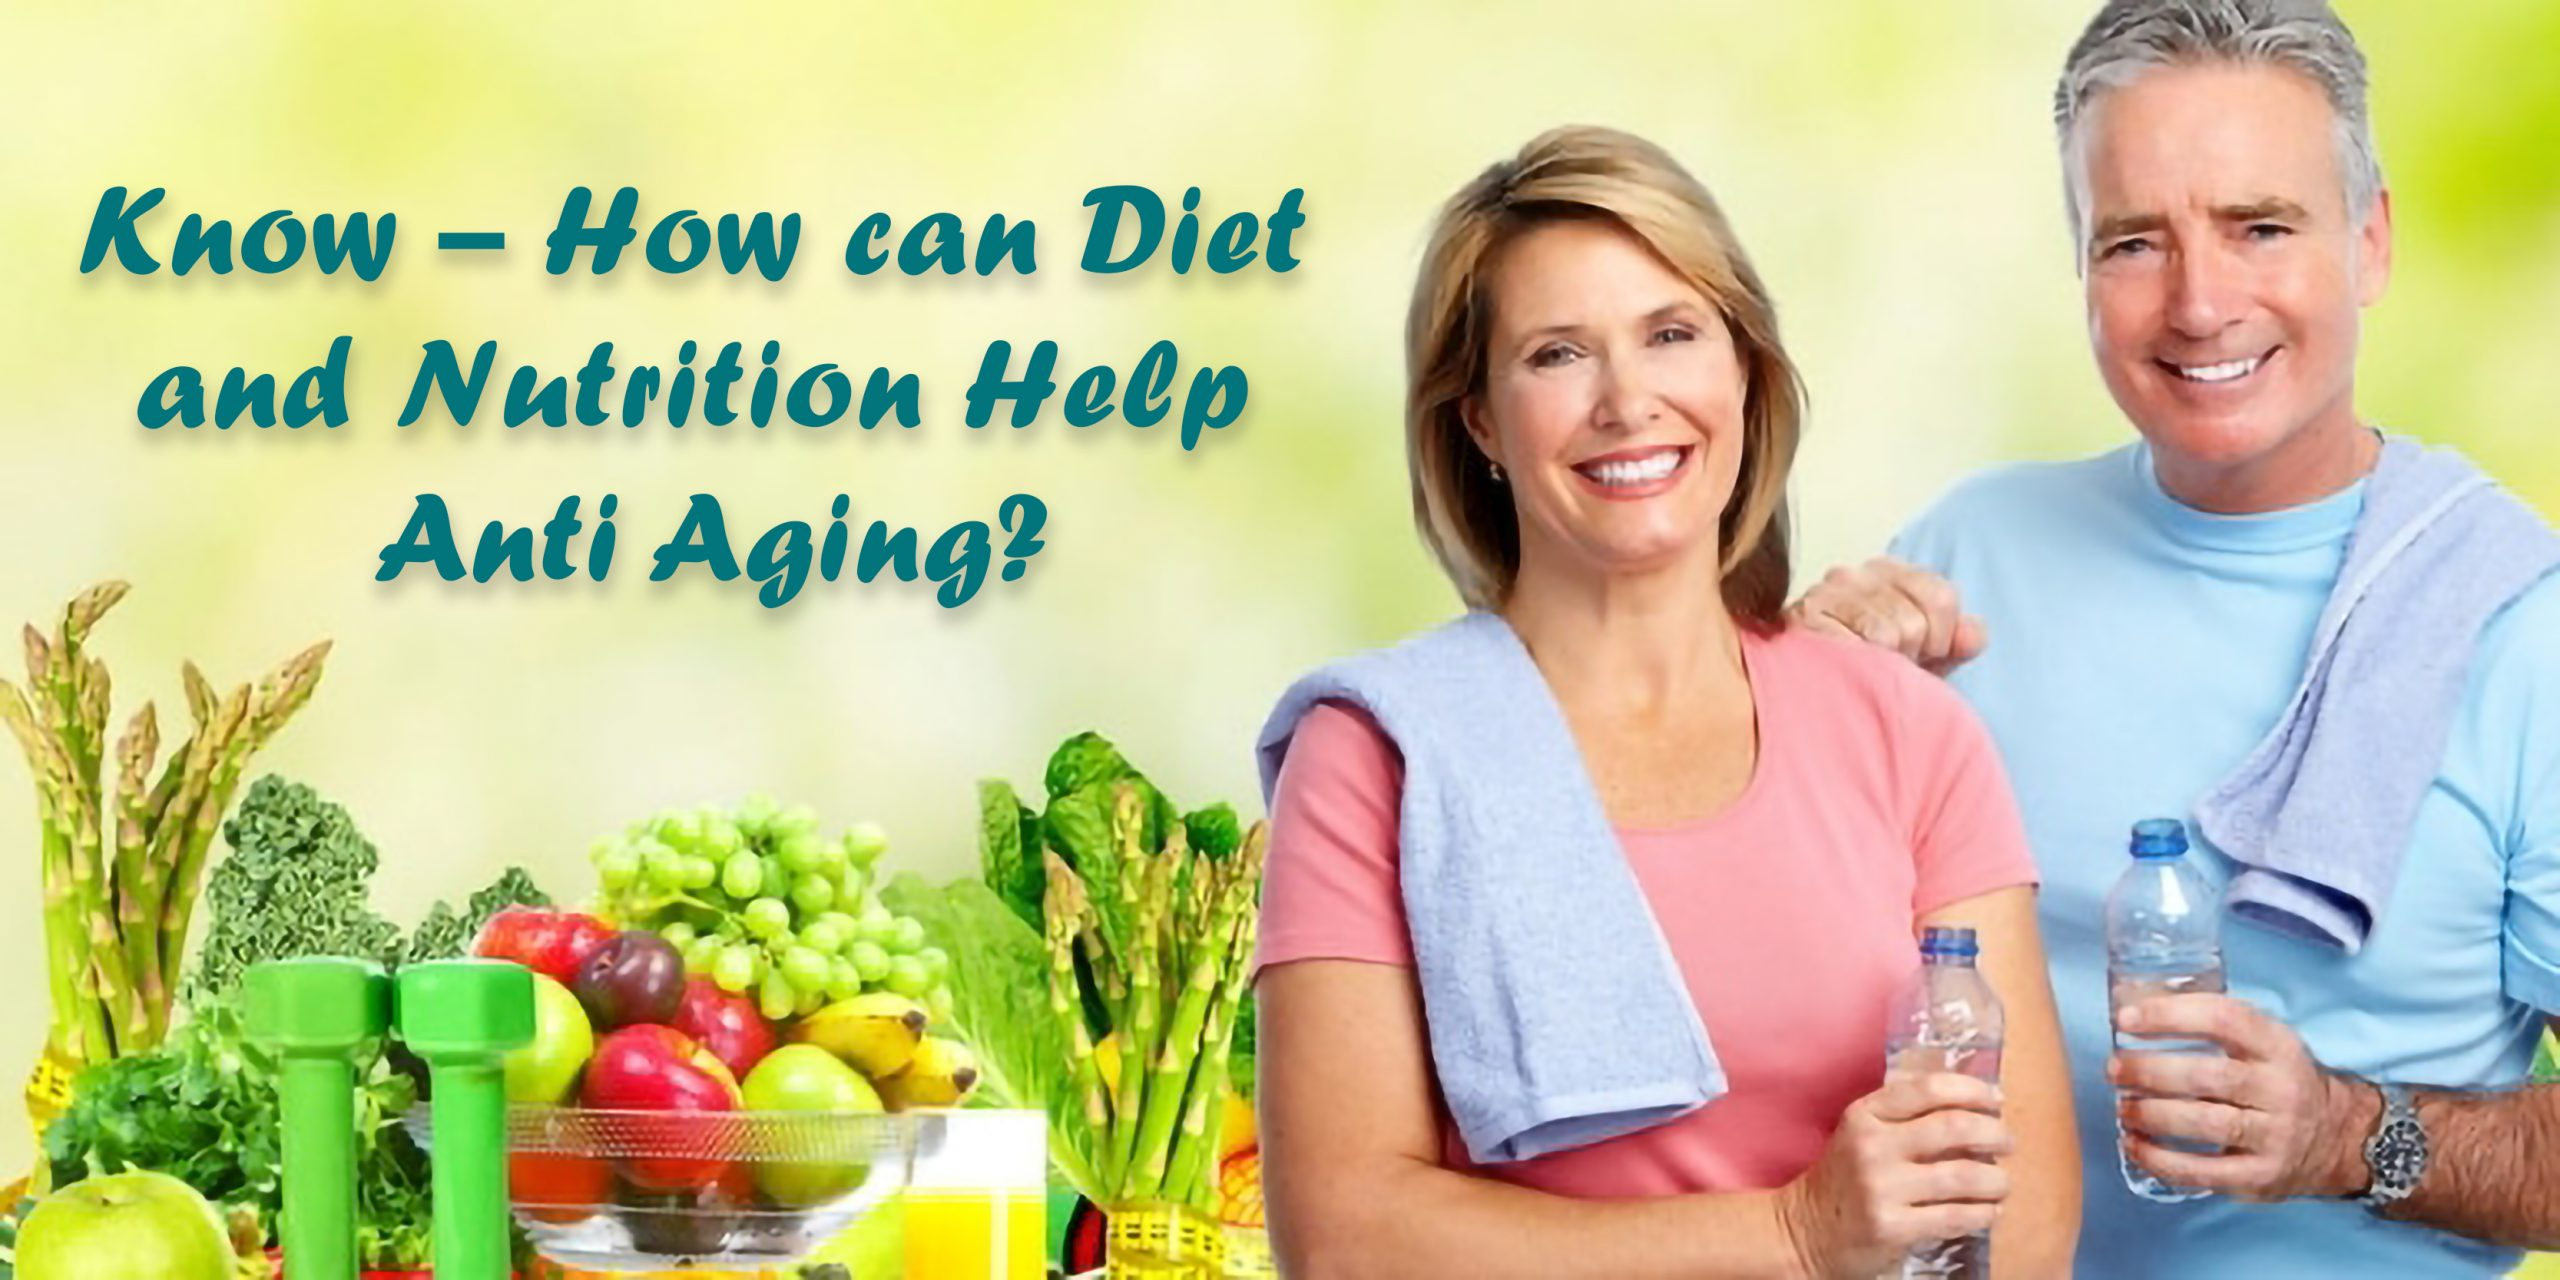 anti aging diet and nutrition frommonday